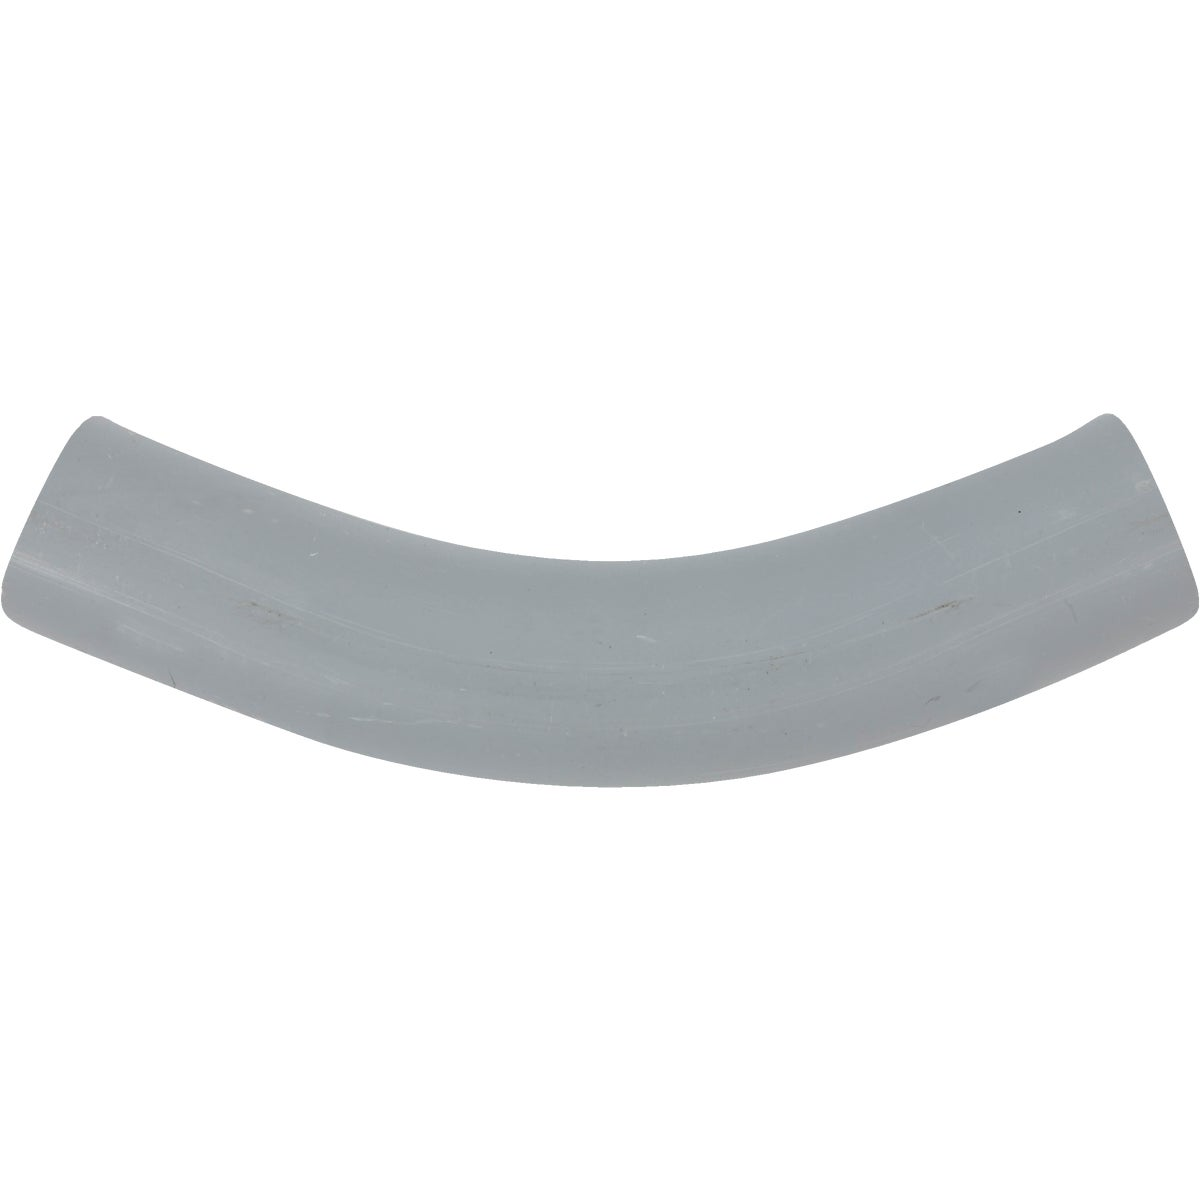 "2"" PVC ELBOW - UA7AJCAR by Thomas & Betts"